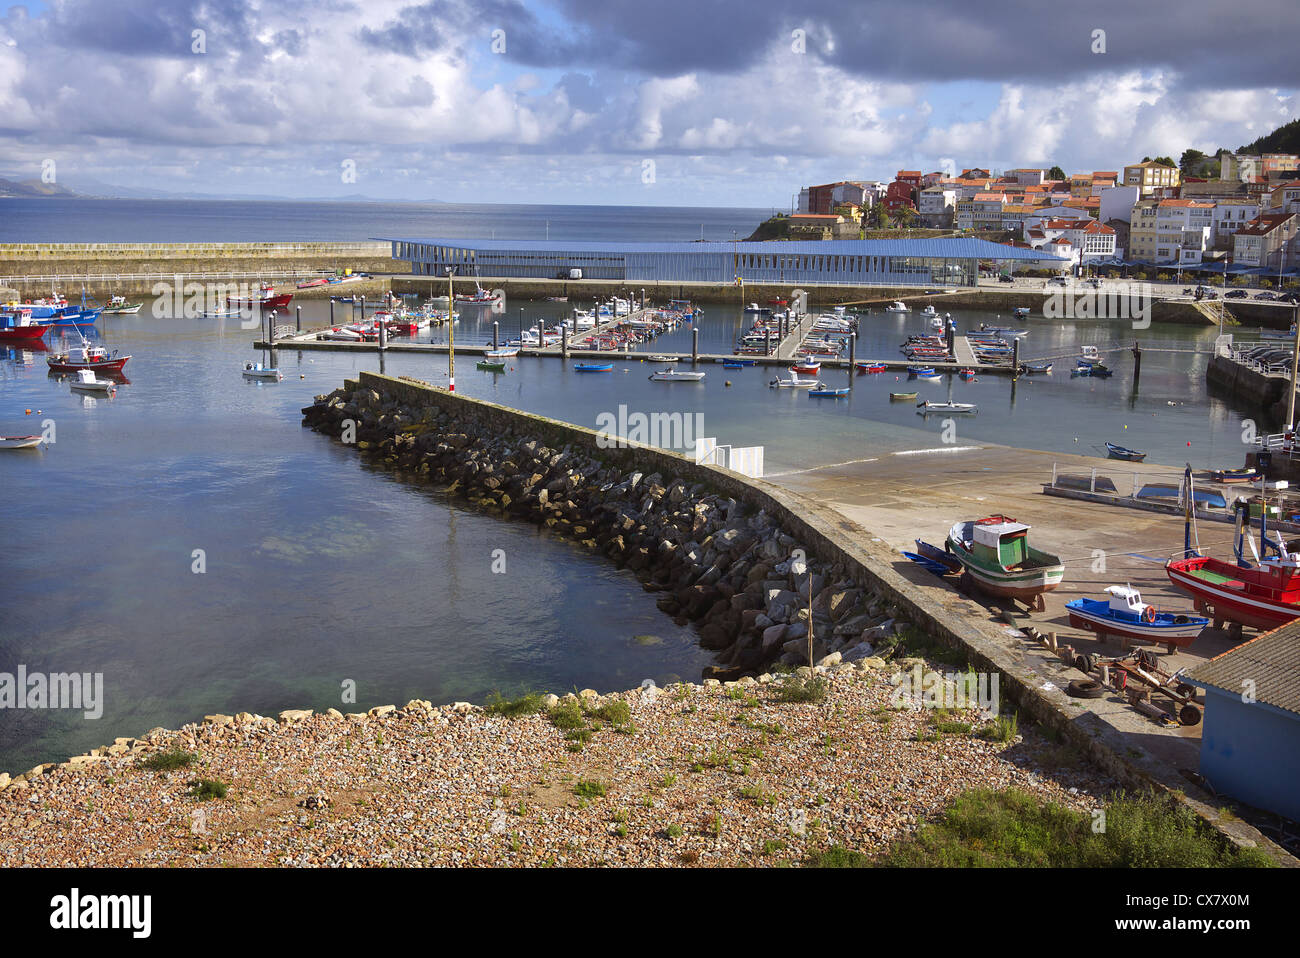 Finisterre harbour, Galicia, Spain. - Stock Image